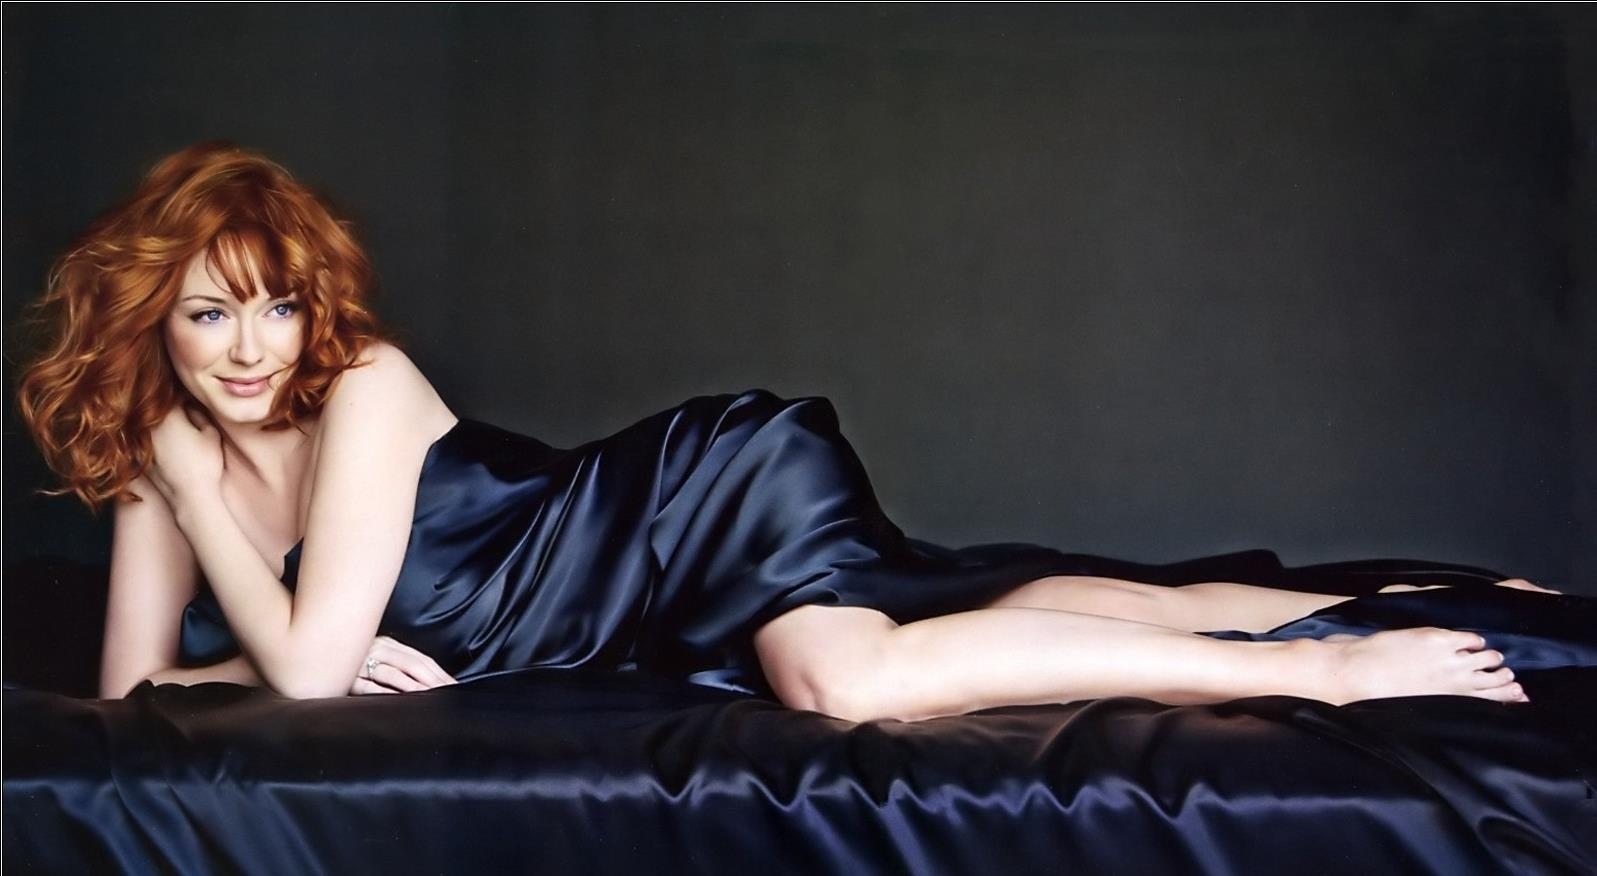 Christina Hendricks sexy naked 8430ZB.jpg